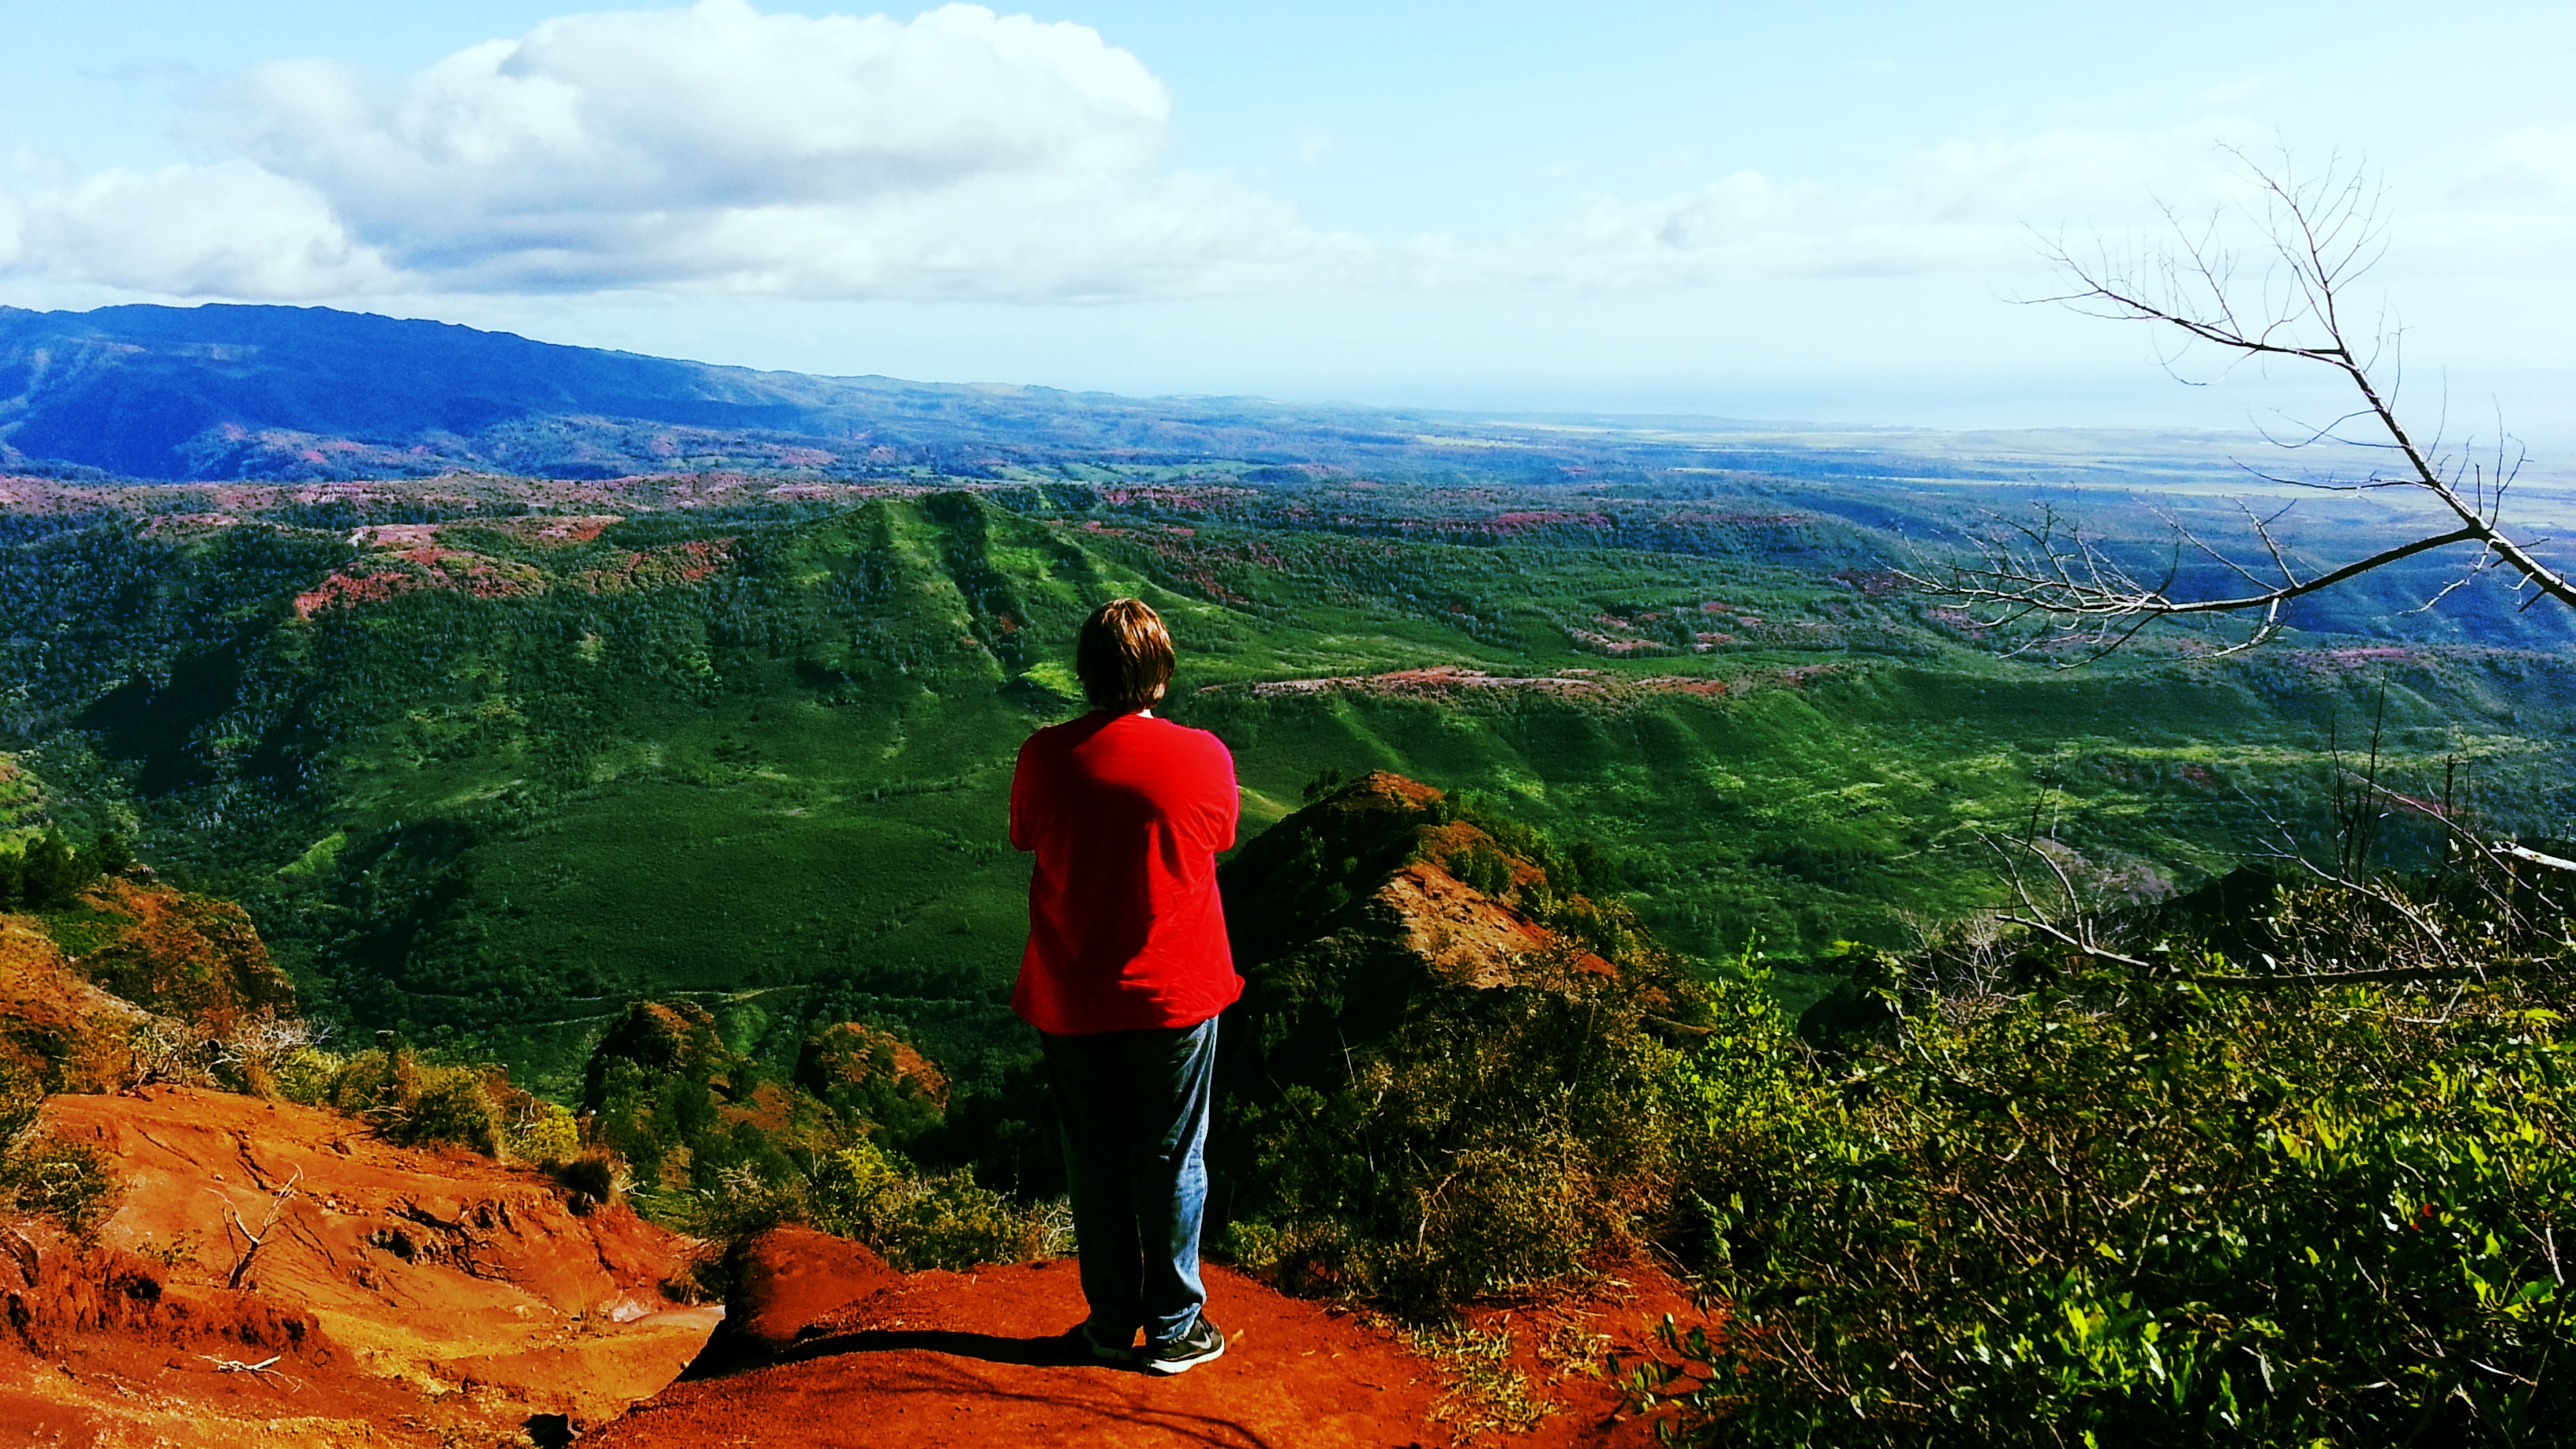 Our middle son T, now 17 years old, looking out over the beauty of Hawai'i as we drove through Waimea Canyon.